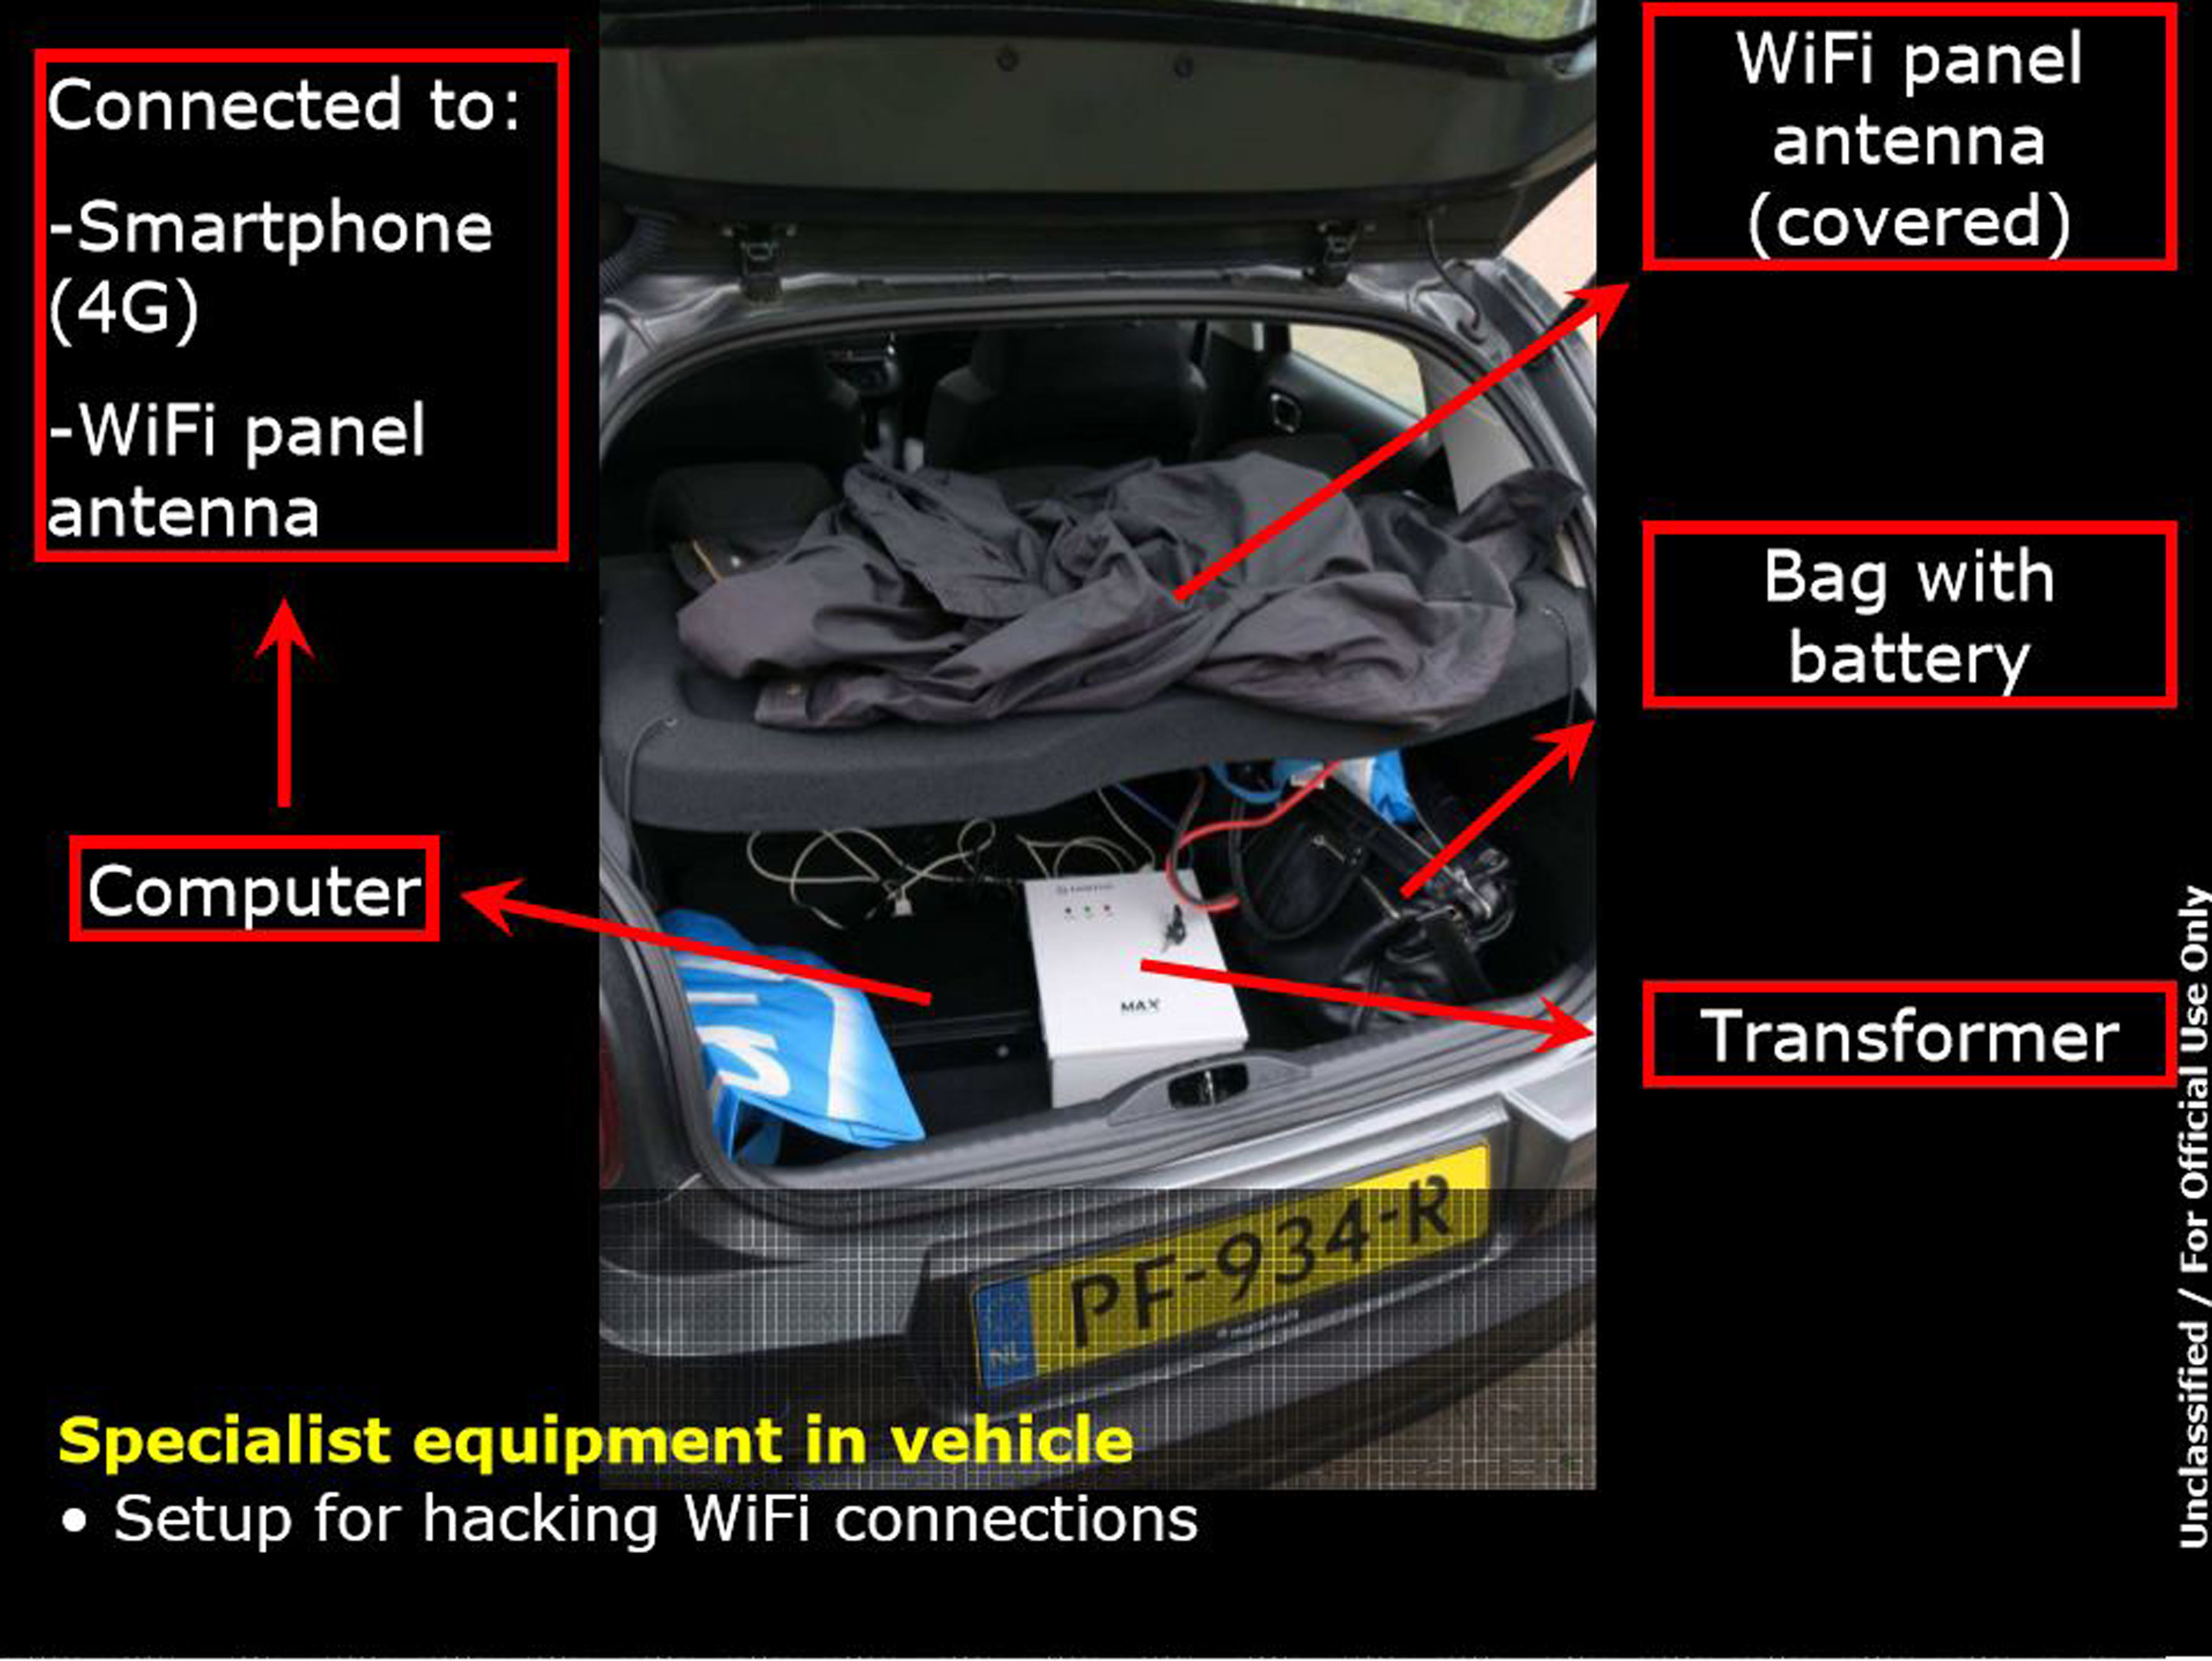 Hacking equipment used by the GRU to target the OPCW